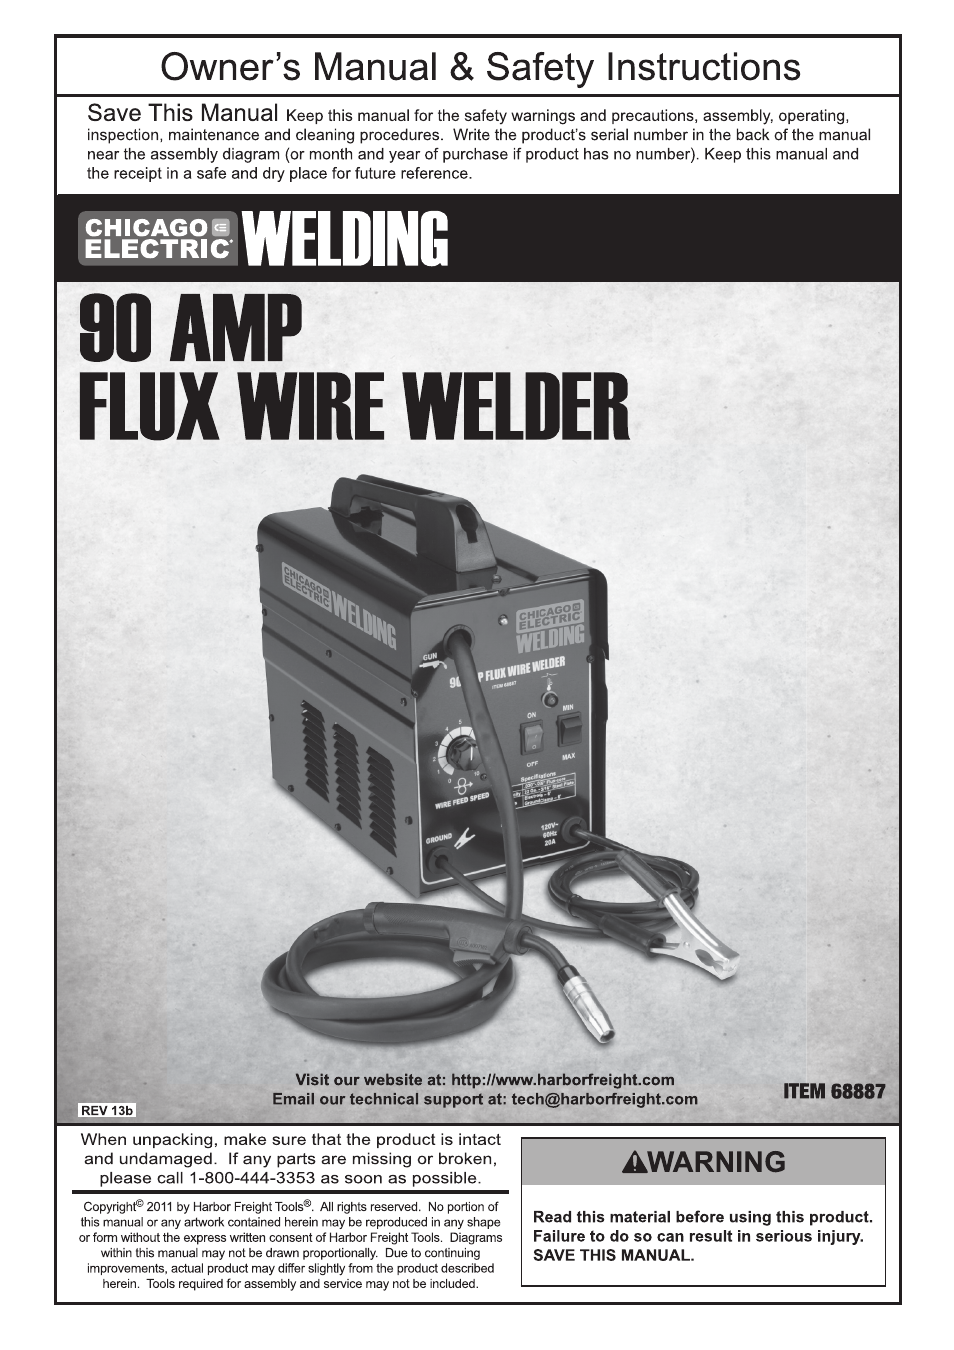 Chicago Electric 90 AMP FLUX WIRE WELDER 68887 User Manual | 28 pages